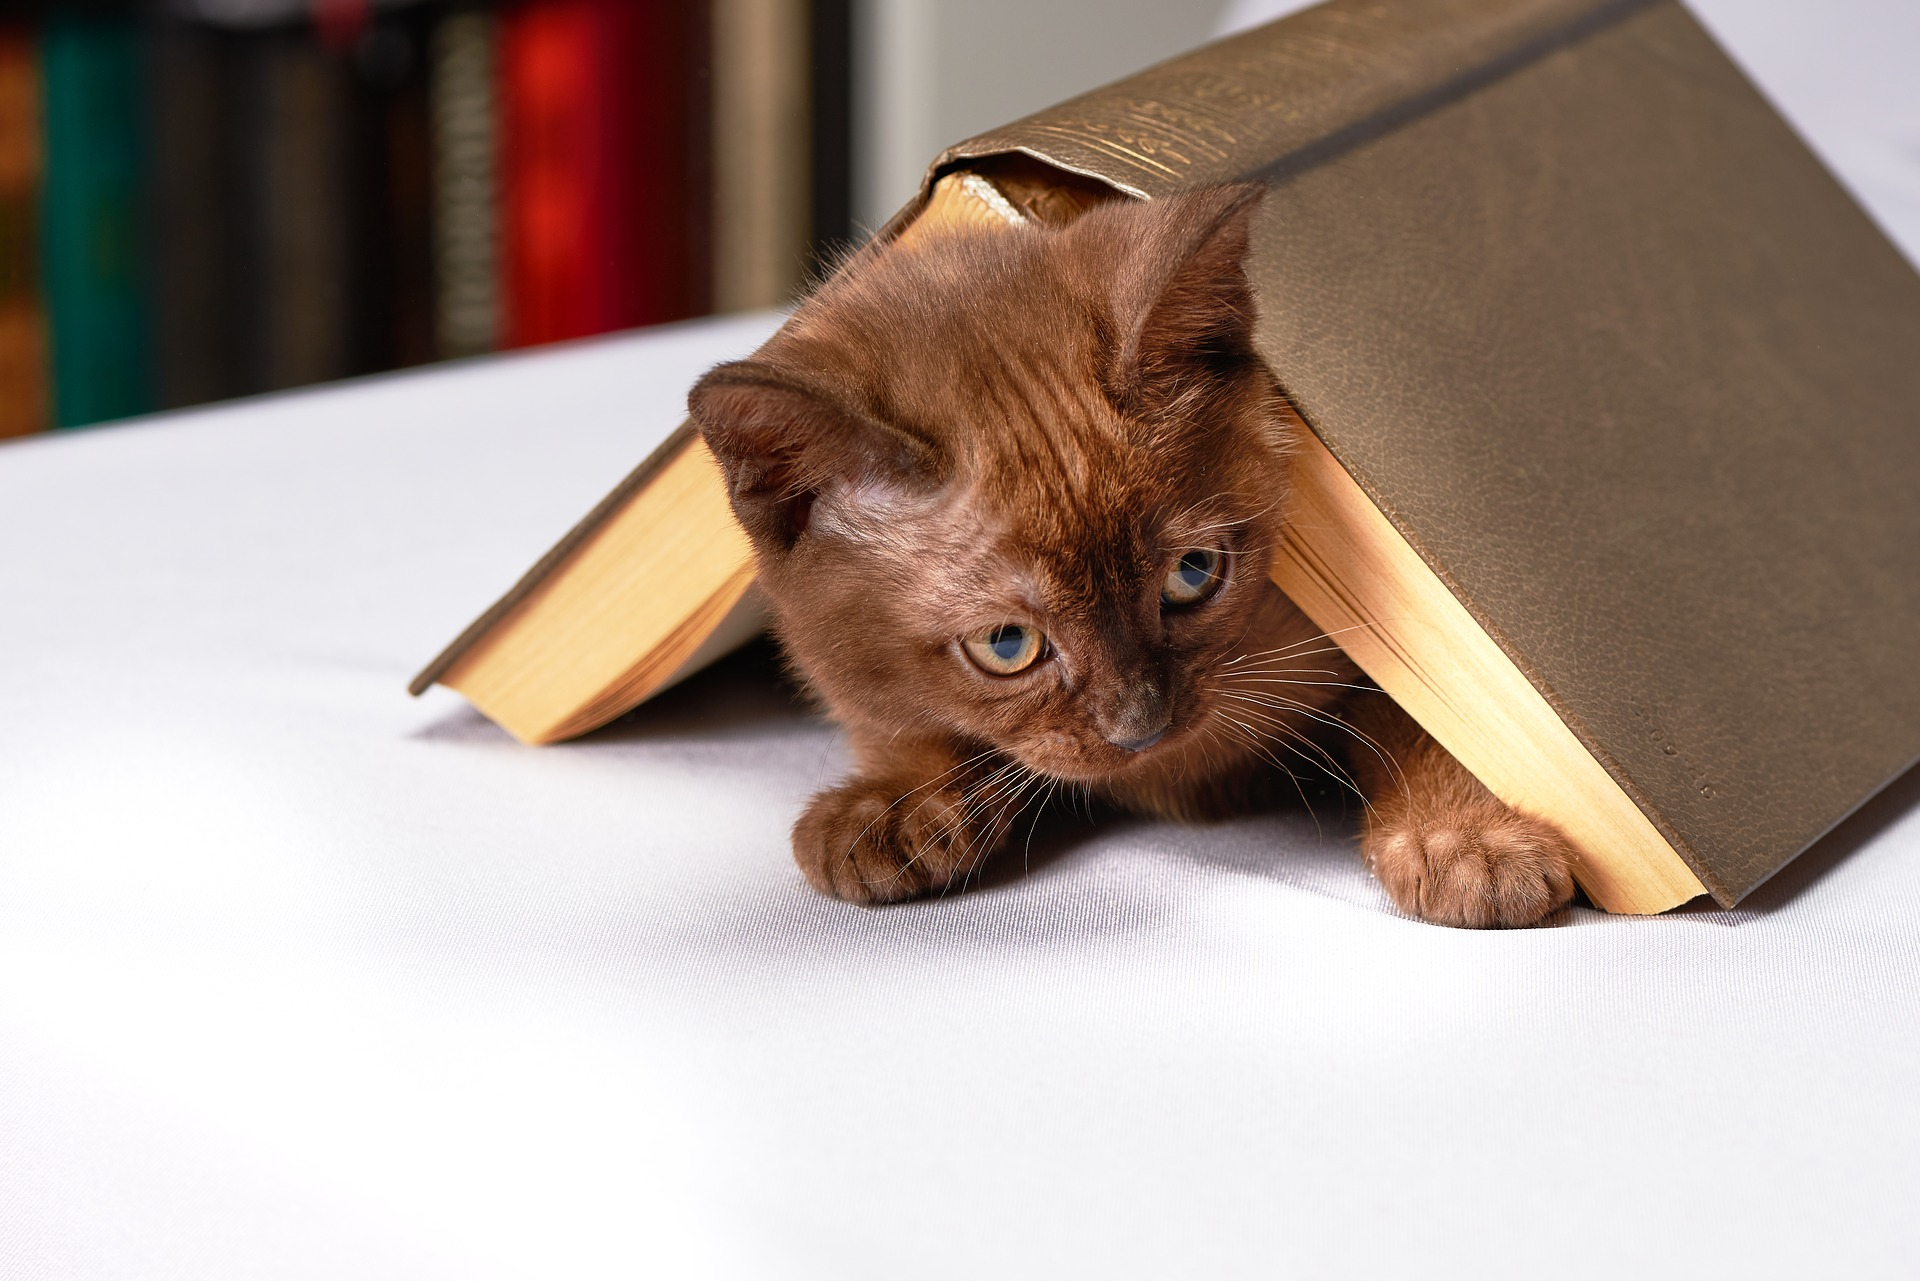 a kitten peeks out from underneath an upturned book